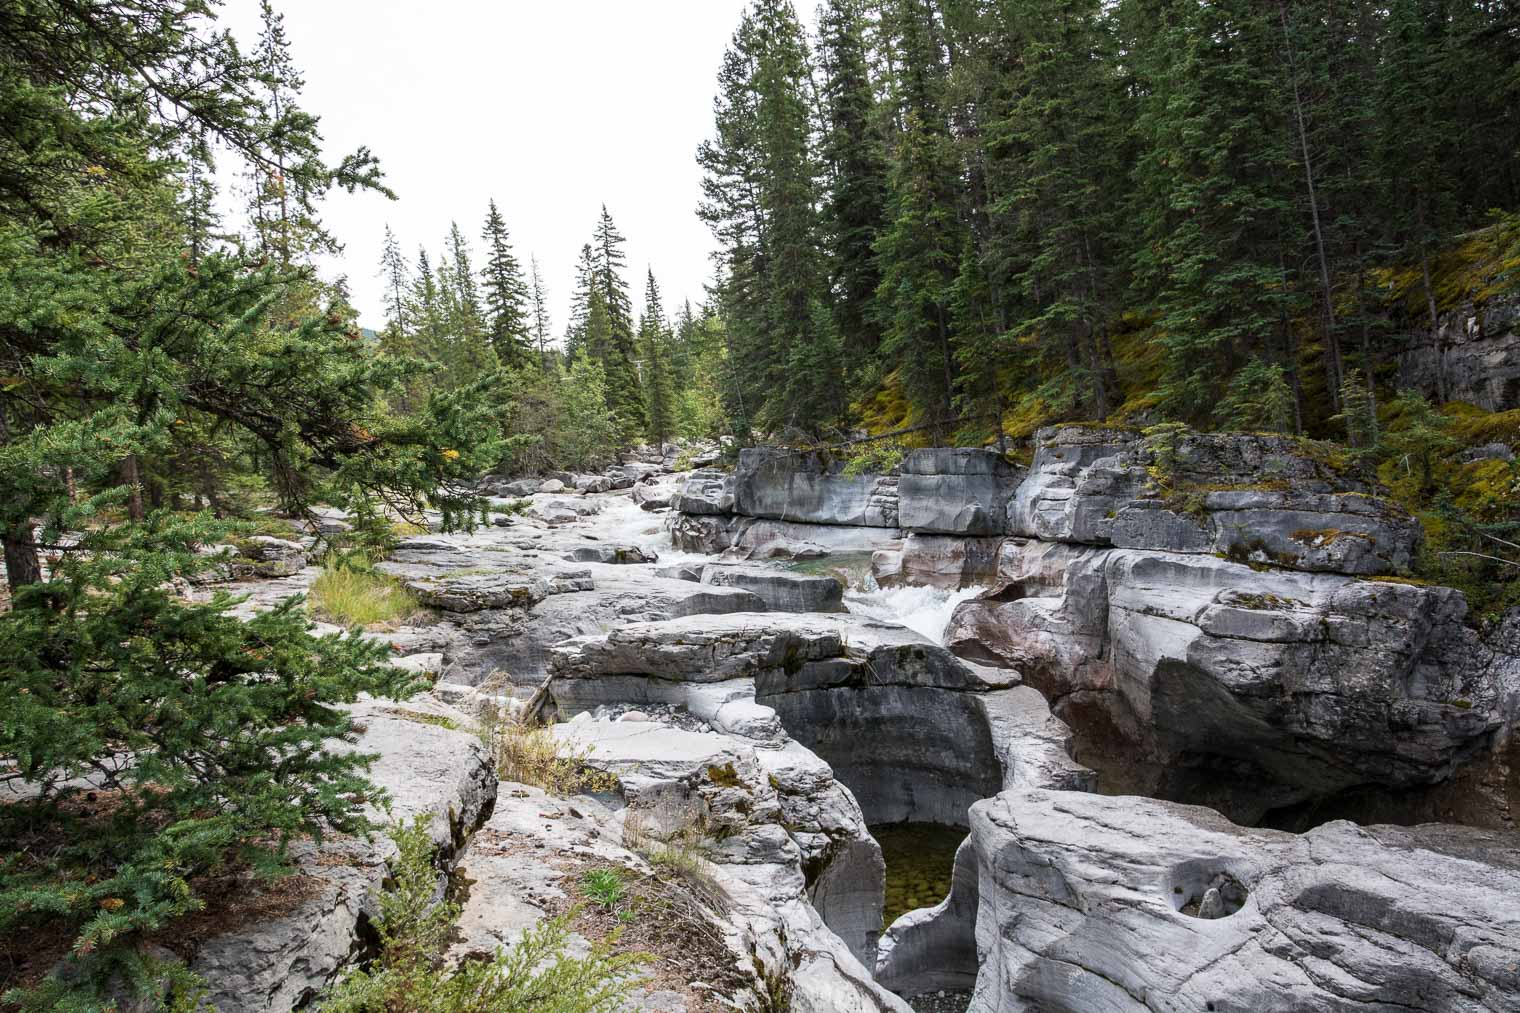 Canadian Rocky Mountains, Maligne Canyon, Keeping With the Times